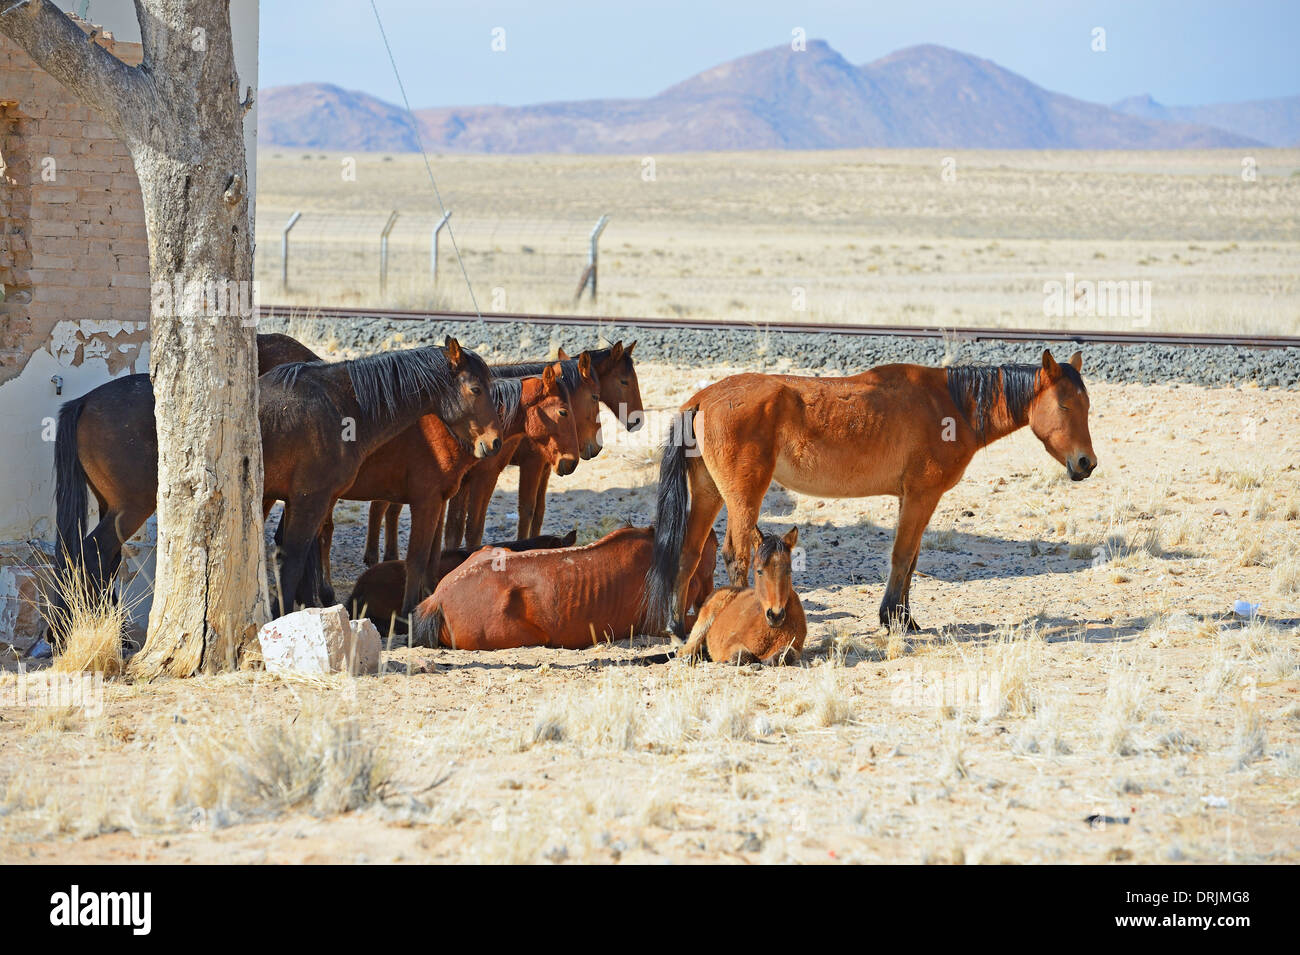 Wild horses to dilapidated road court building of Garub with From, Namibia, Africa, Wildpferde an verfallenen Bahnshofsgebaeude Stock Photo